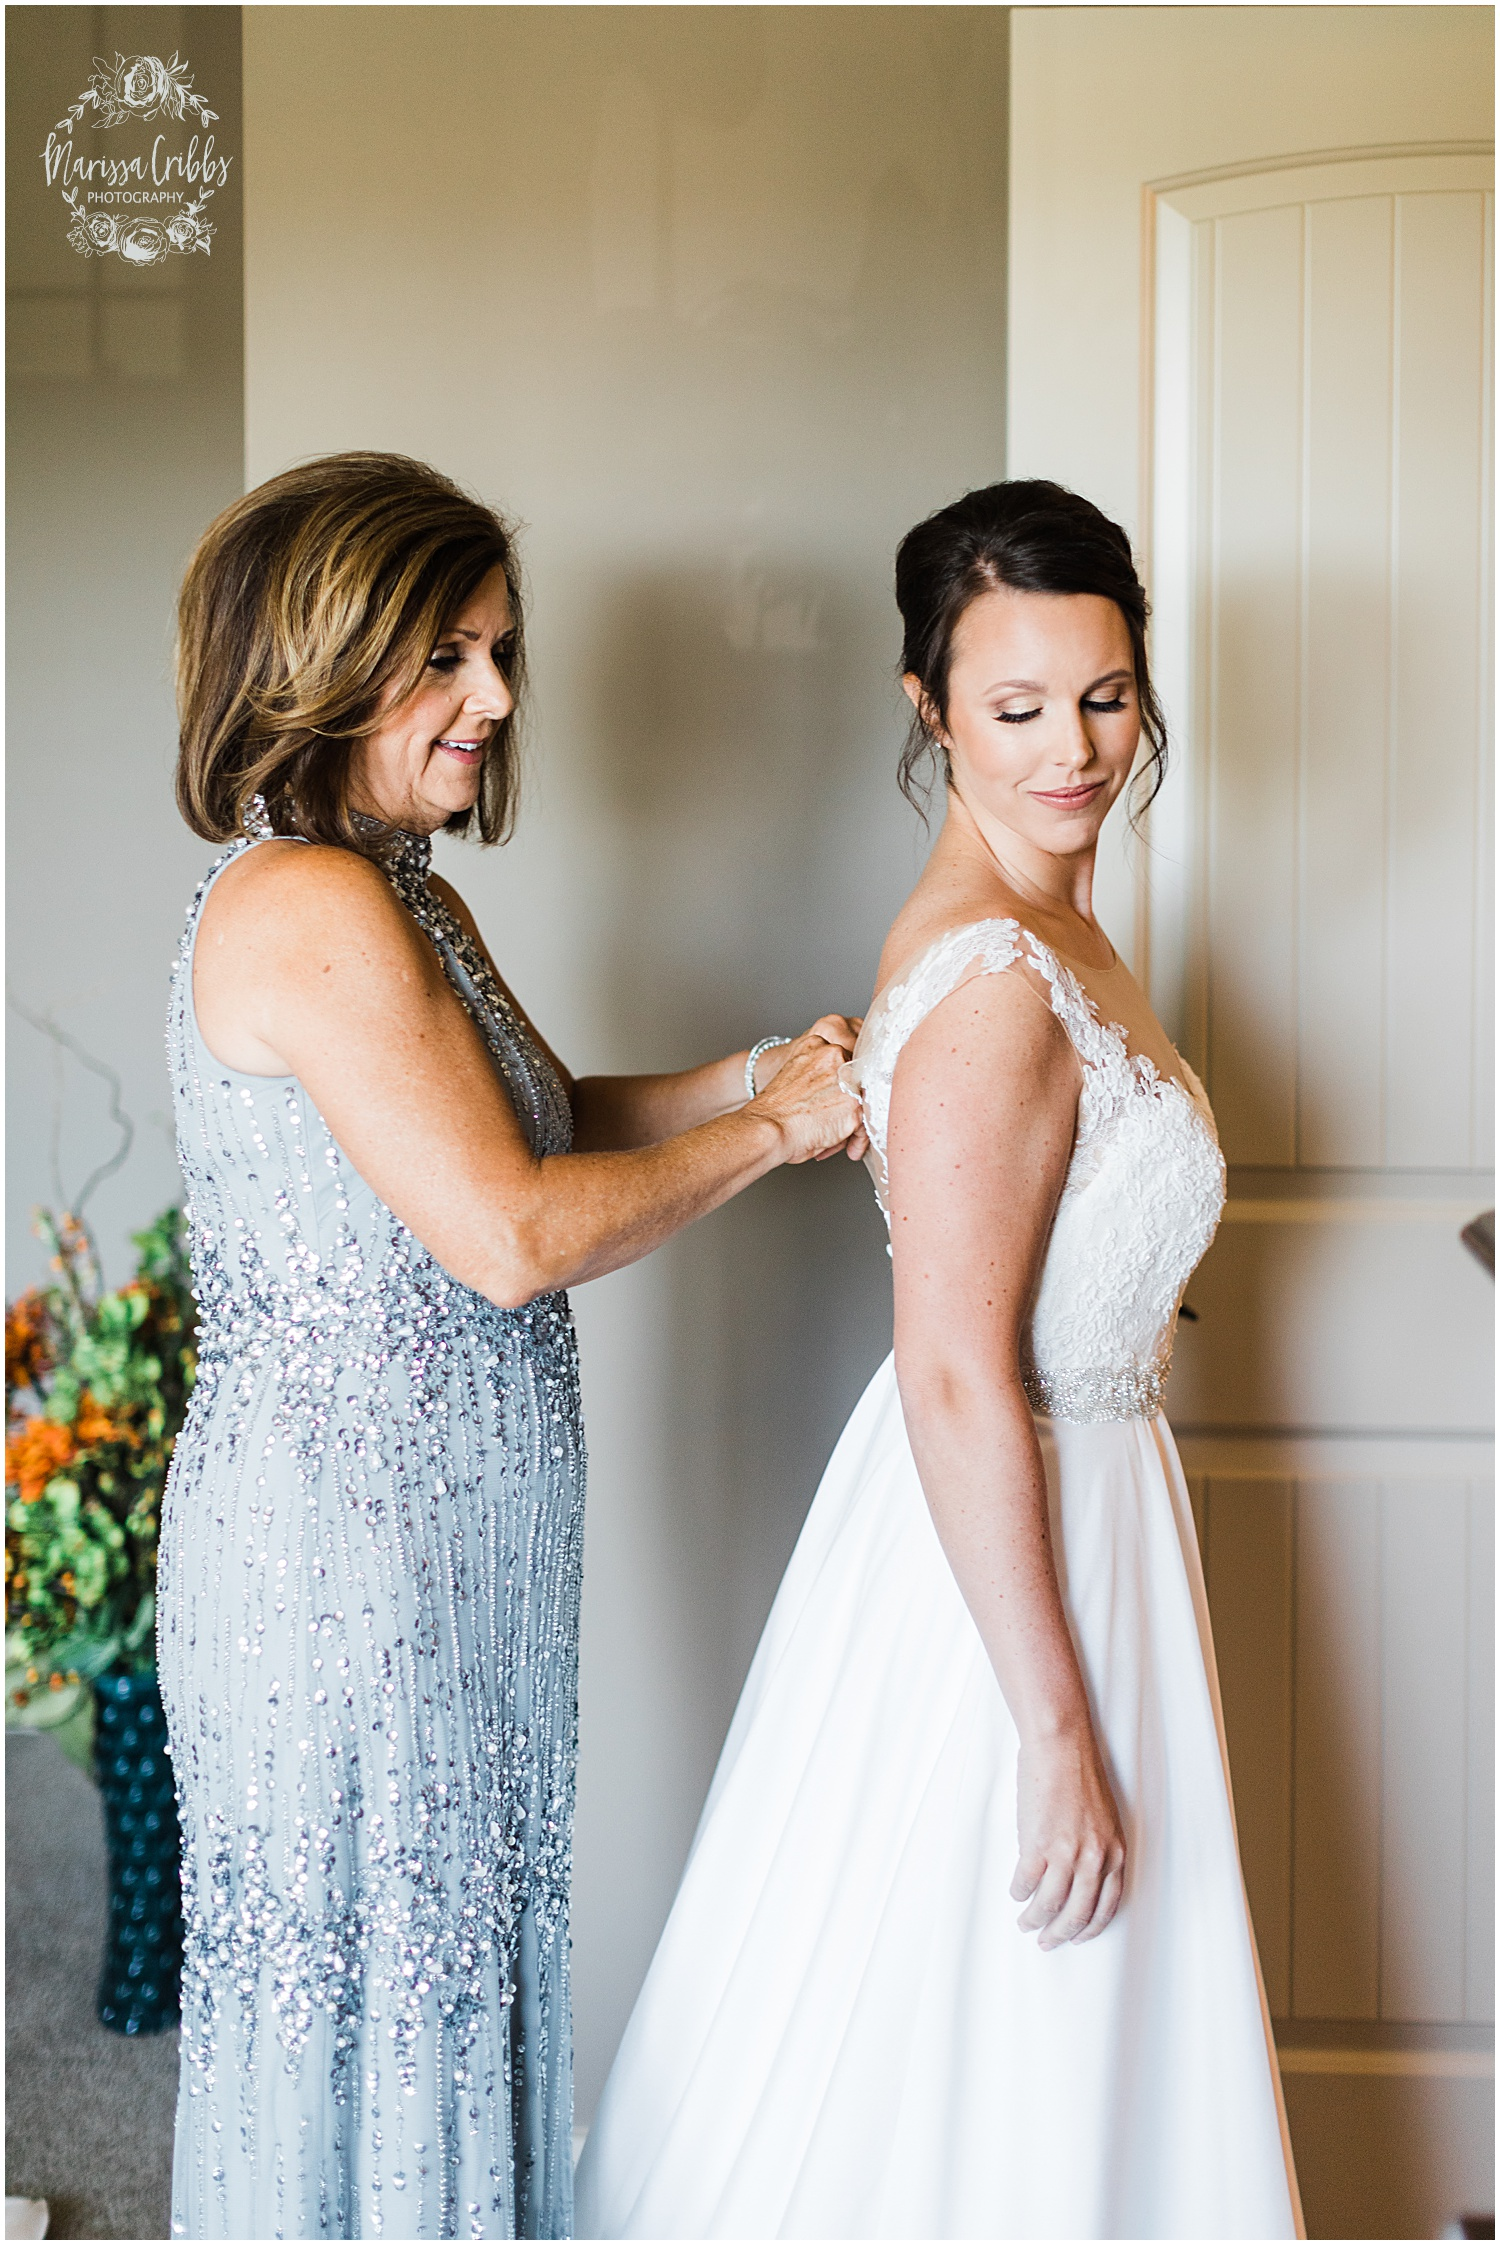 KELLY & MITCH MARRIED BLOG | MARISSA CRIBBS PHOTOGRAPHY | THE EVERLY EVENT SPACE_8815.jpg